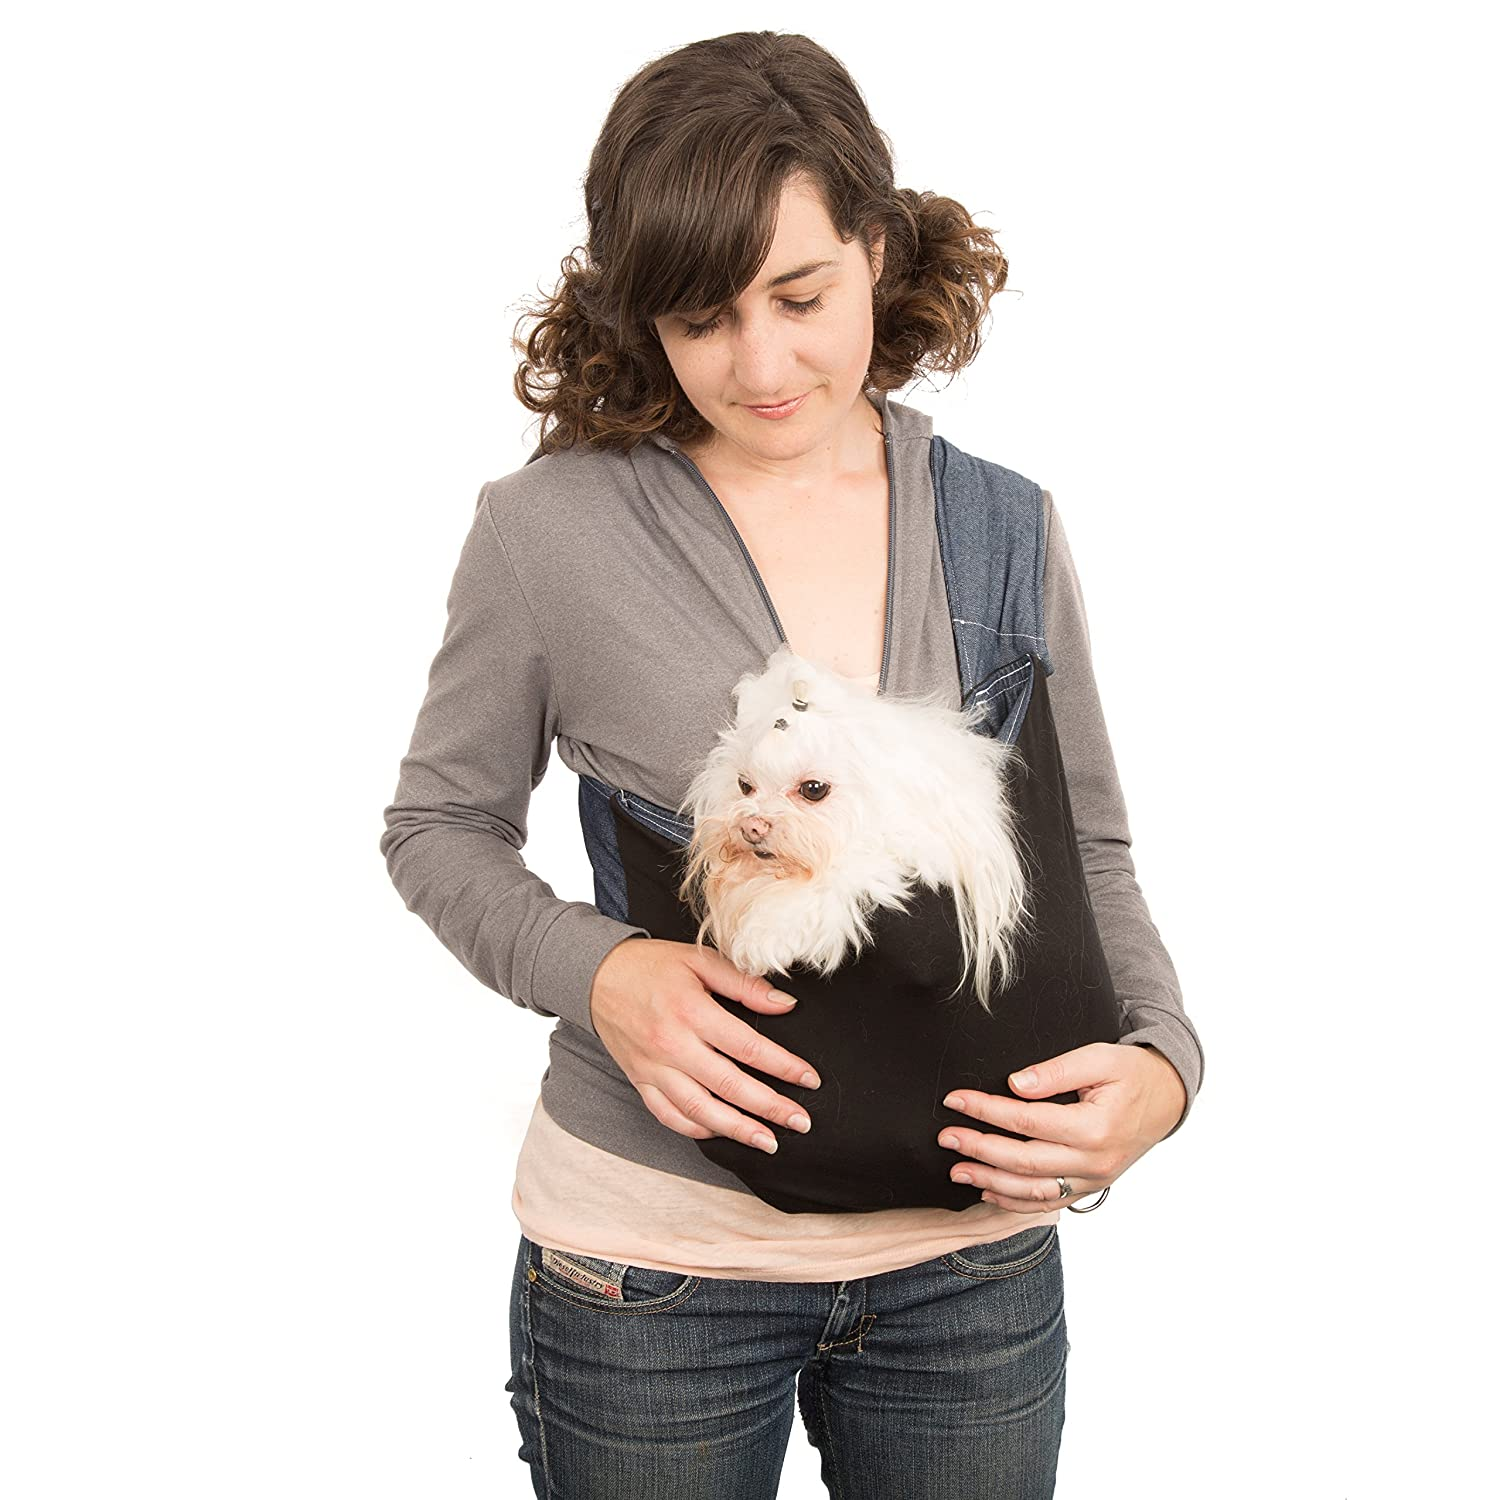 XL Ultimate Small Dog Carrier Sling By Kangapooch, Designed and Handmade in USA By Chelsea Snyder, Premium Jersey Knit Organic Cotton, Lifetime Warranty (XL)